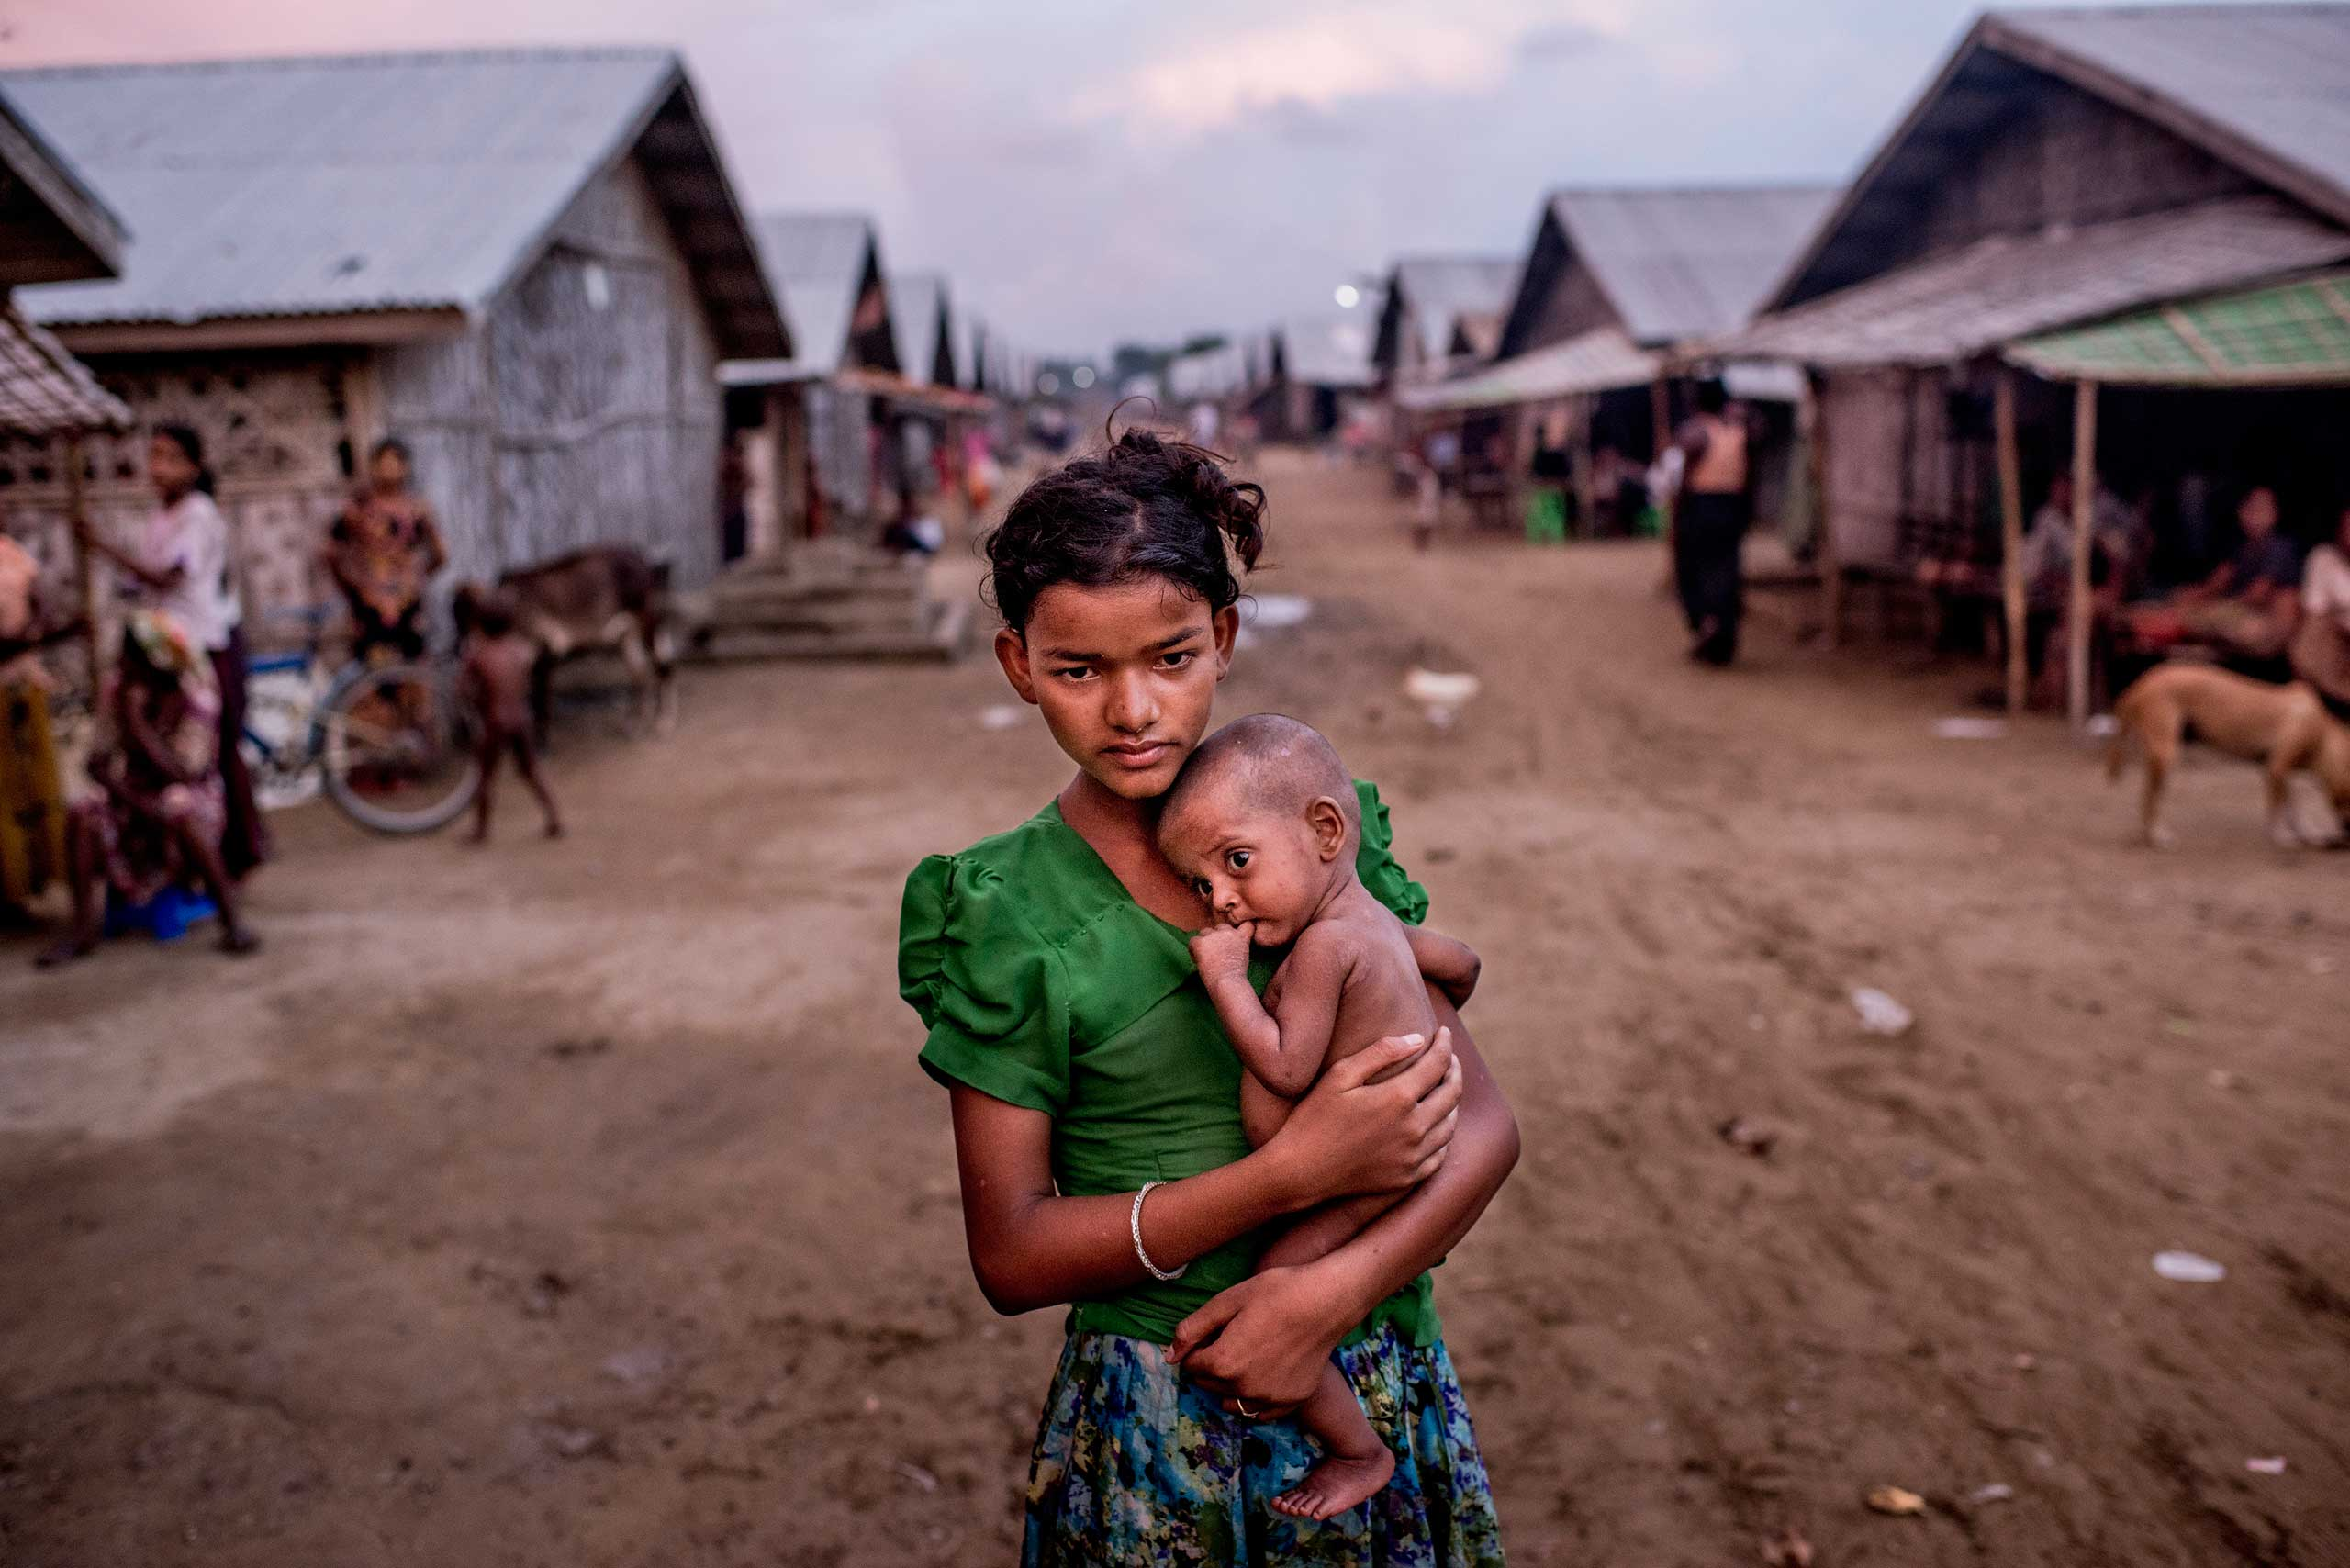 The New York Times: For the Rohingya of Burma, a Hardscrabble Existence